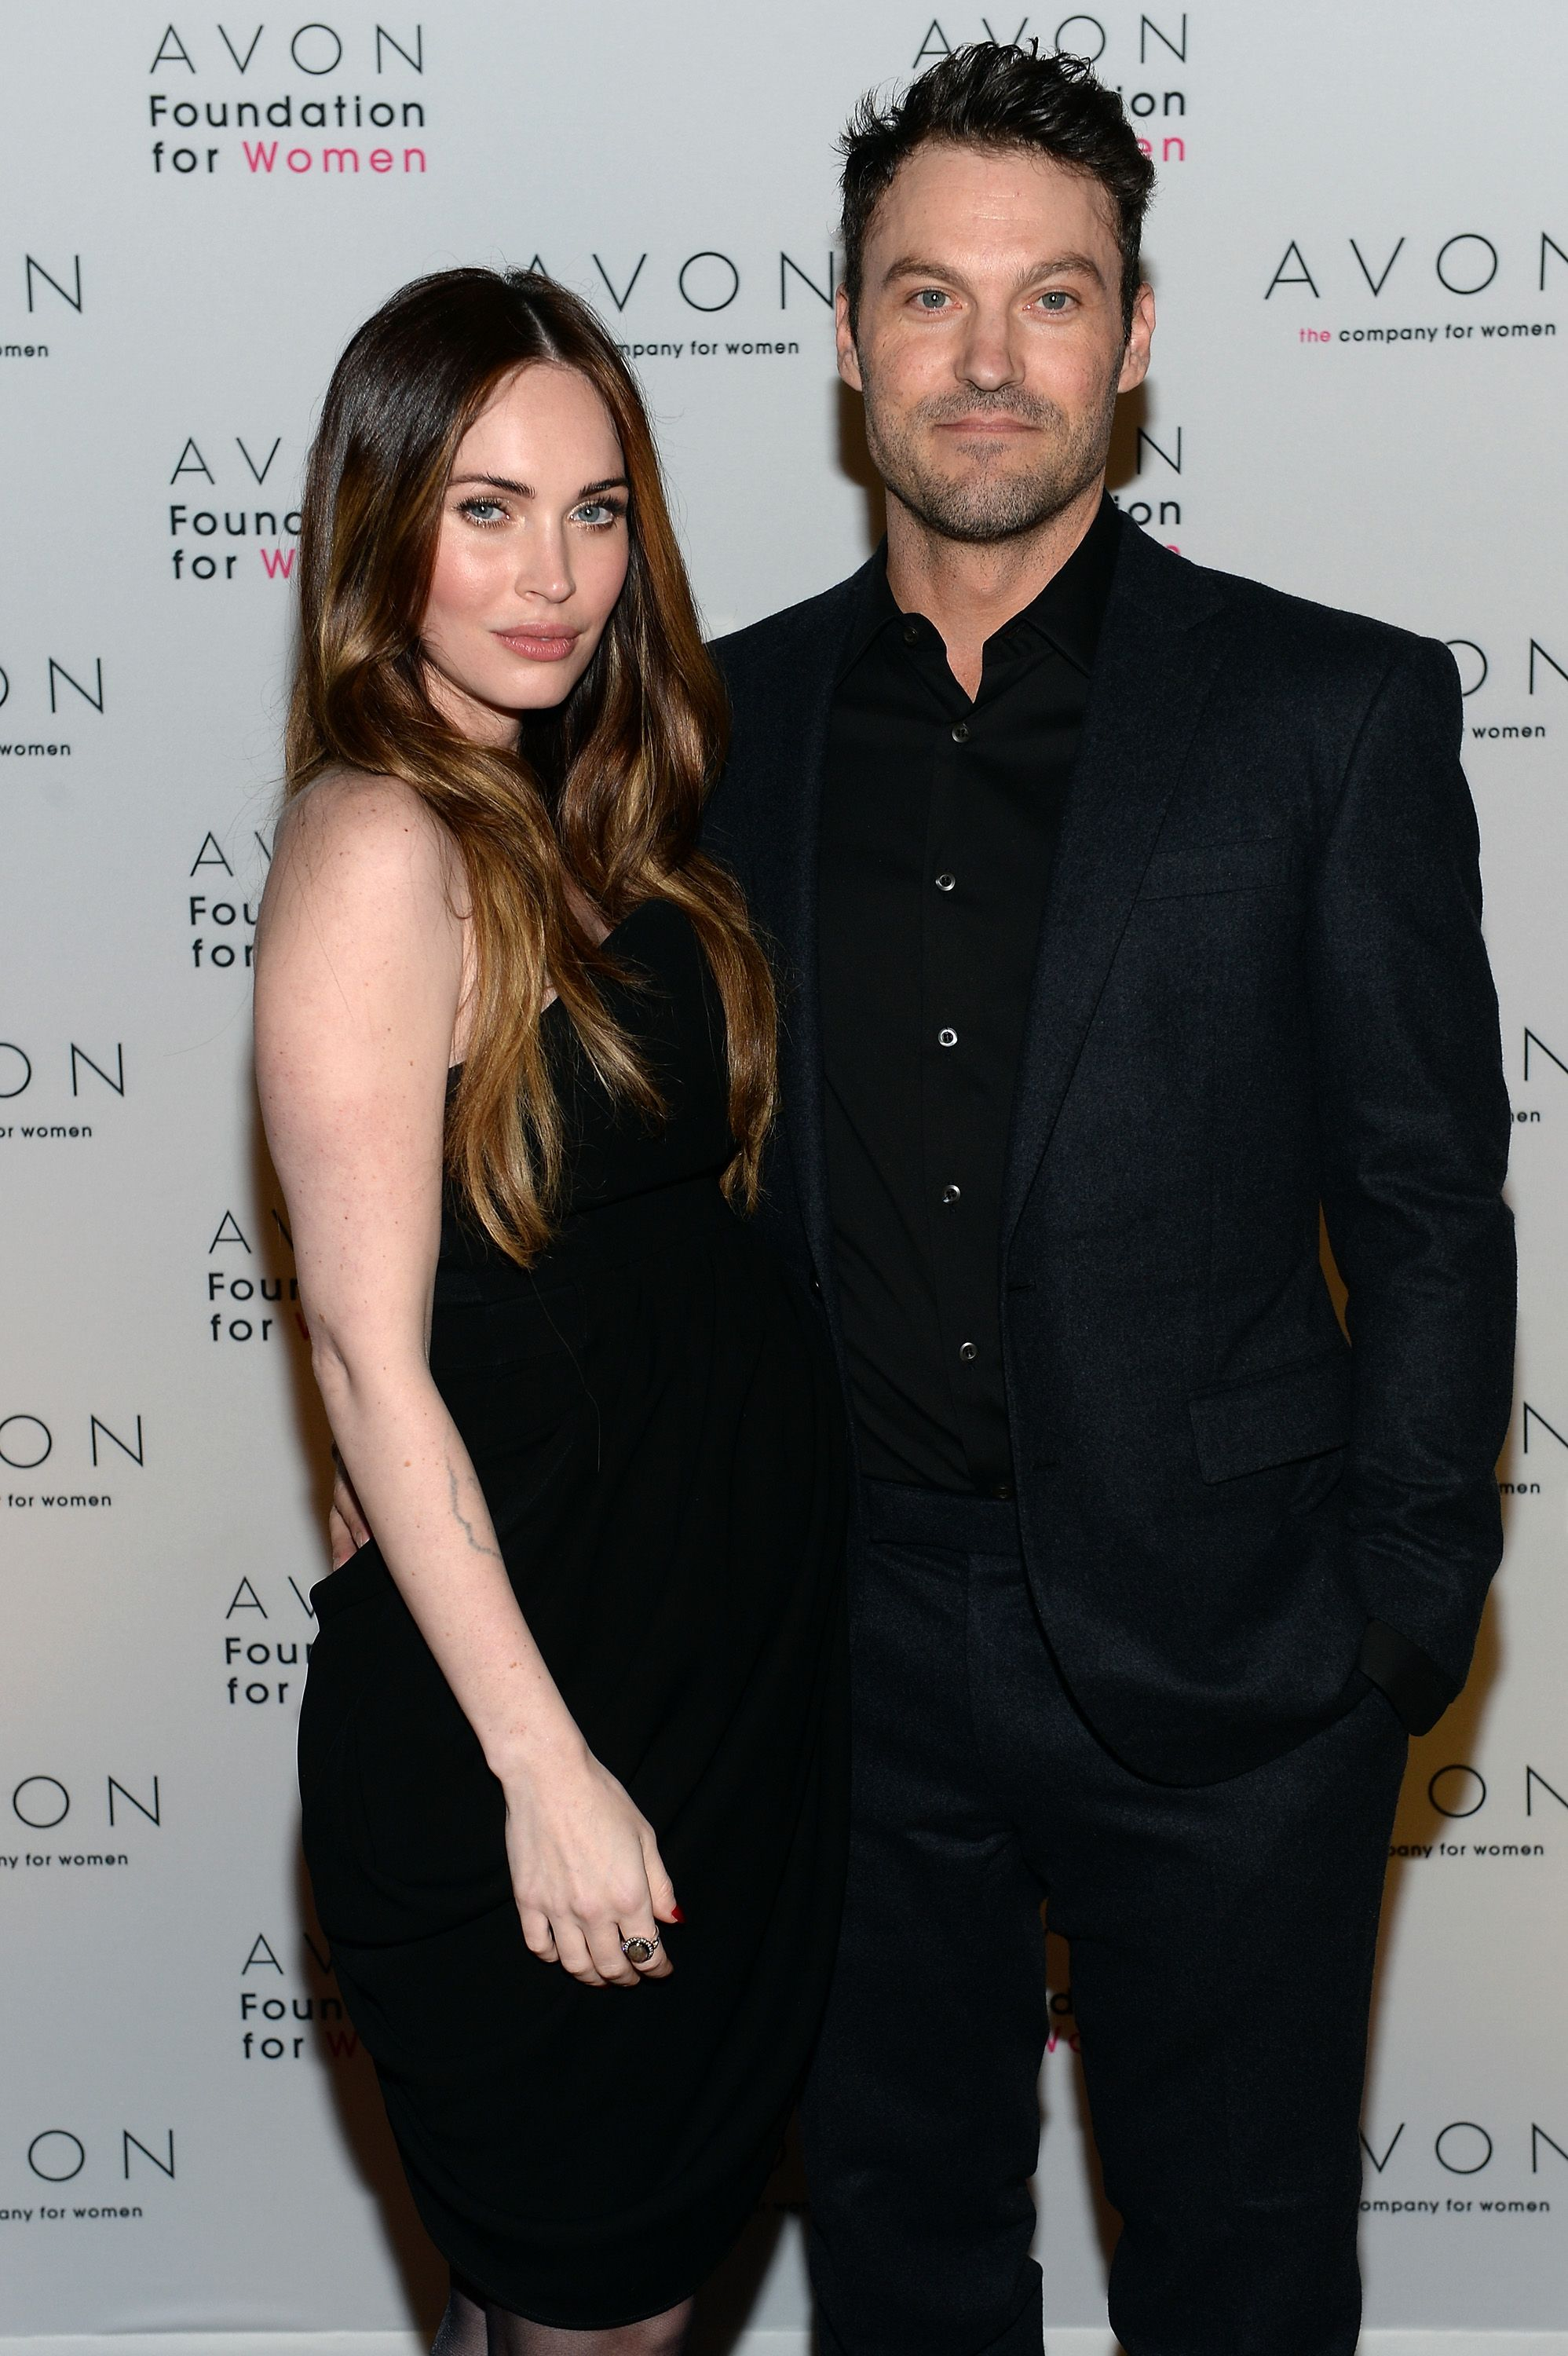 Megan Fox and Brian Austin Green at The Morgan Library & Museum in New York City at the Avon Foundation launch of its #SeeTheSigns of Domestic Violence global social media campaign. | Source: Getty Images